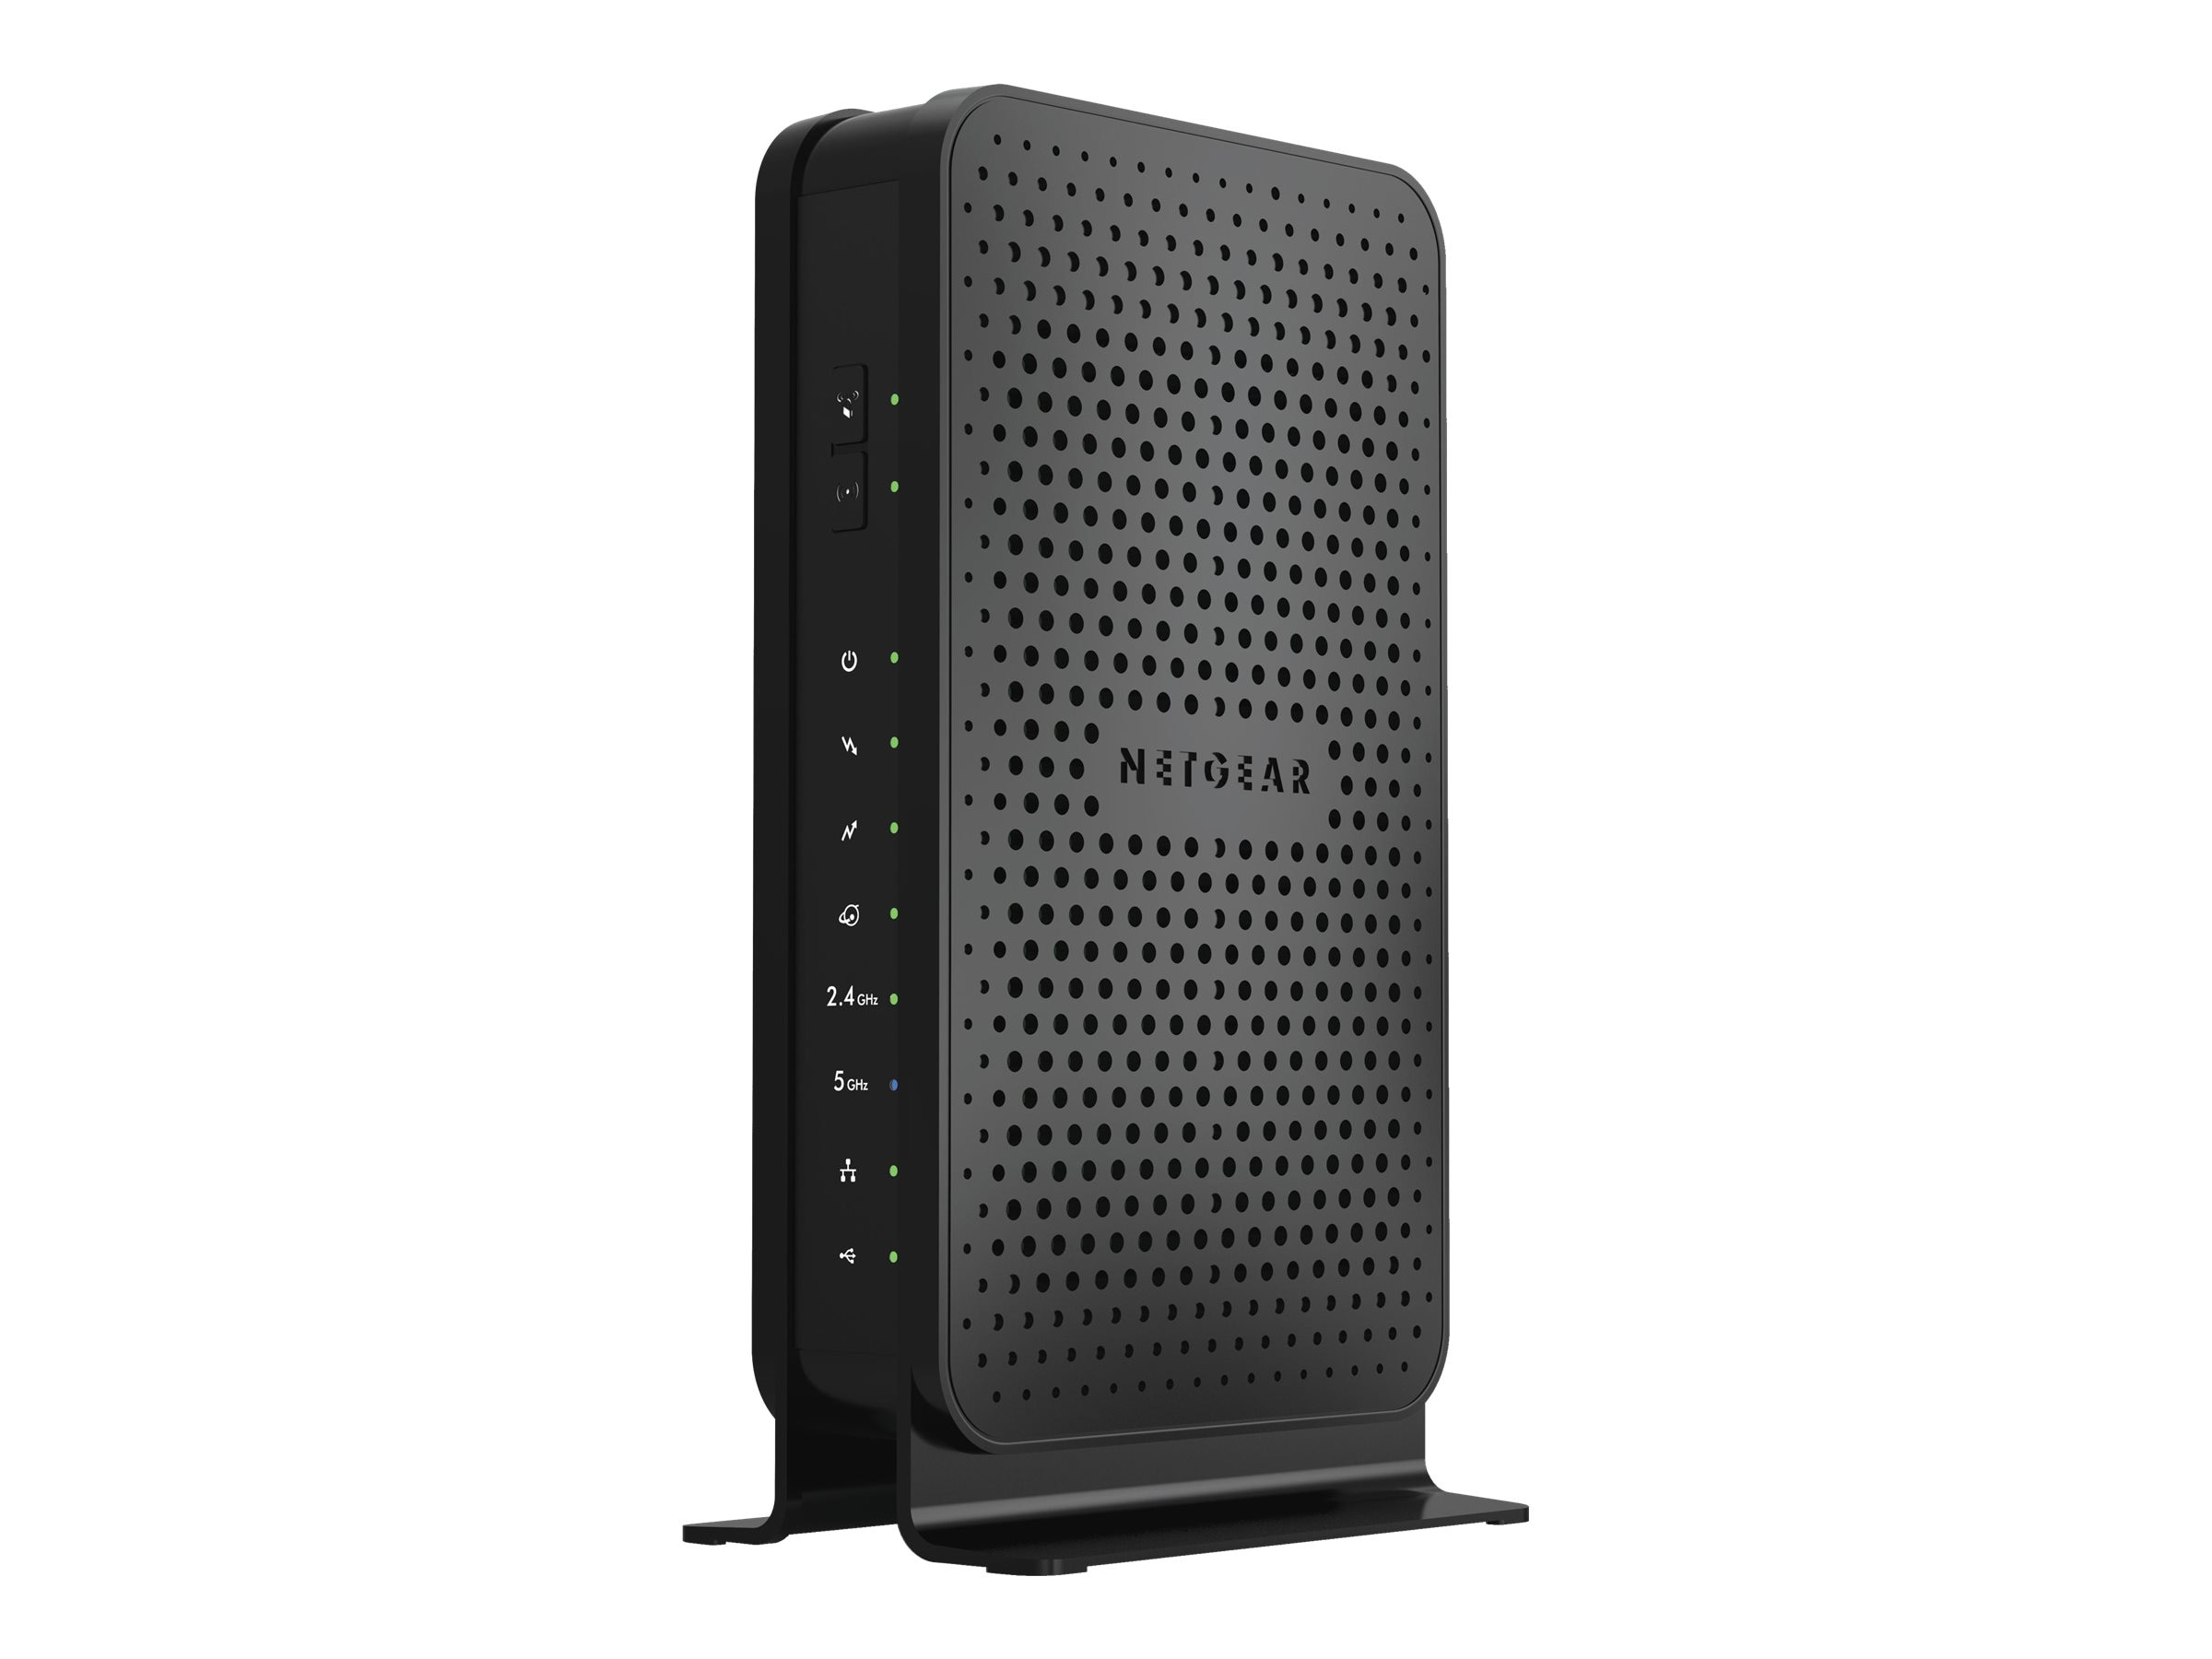 Netgear N600 Wi-Fi Cable Modem Router